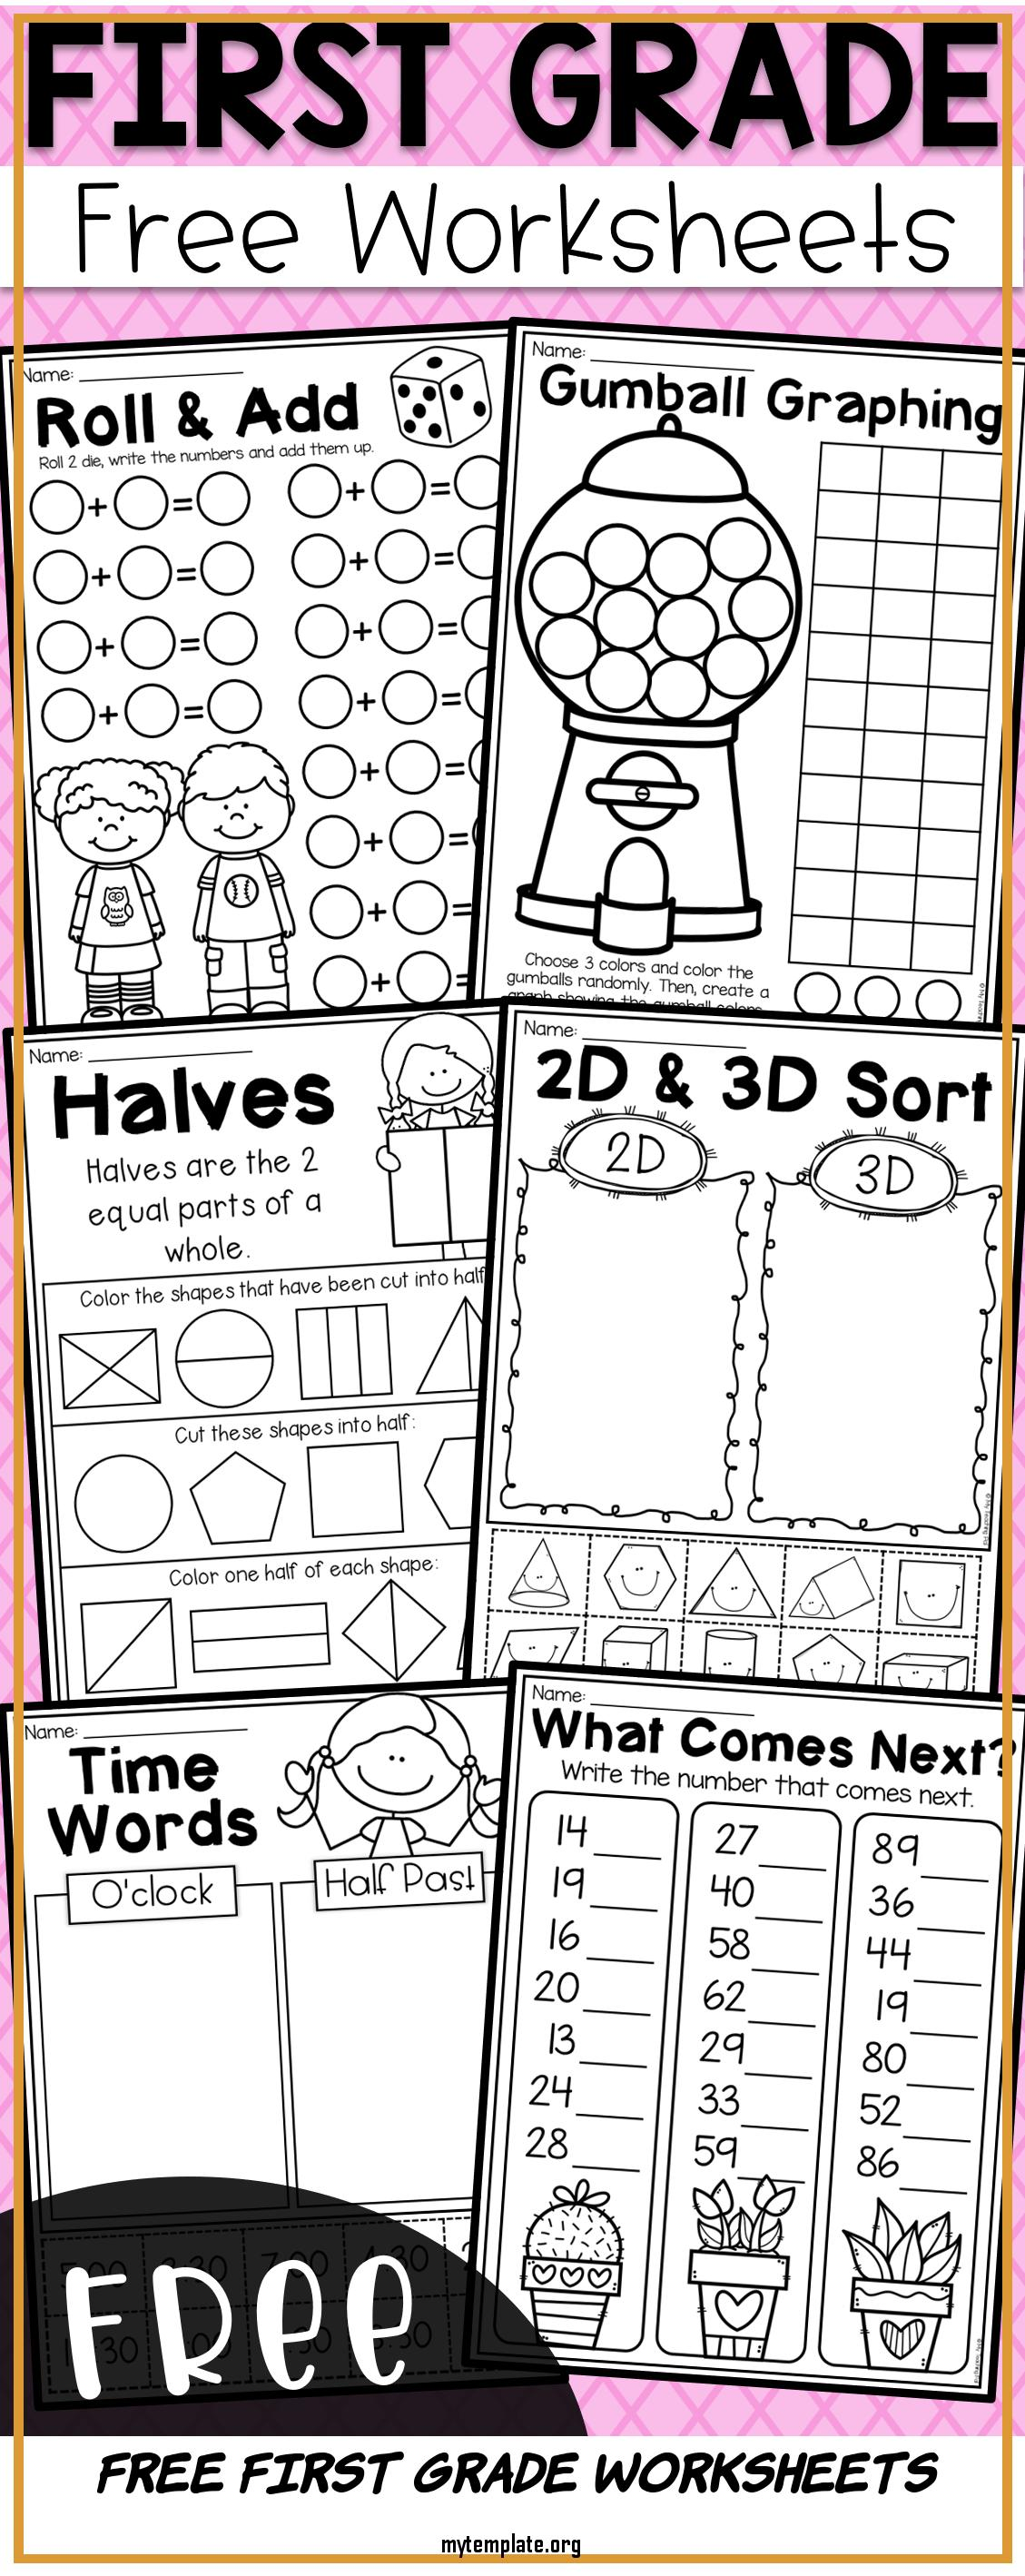 hight resolution of Centimeter Worksheets For First Grade   Printable Worksheets and Activities  for Teachers